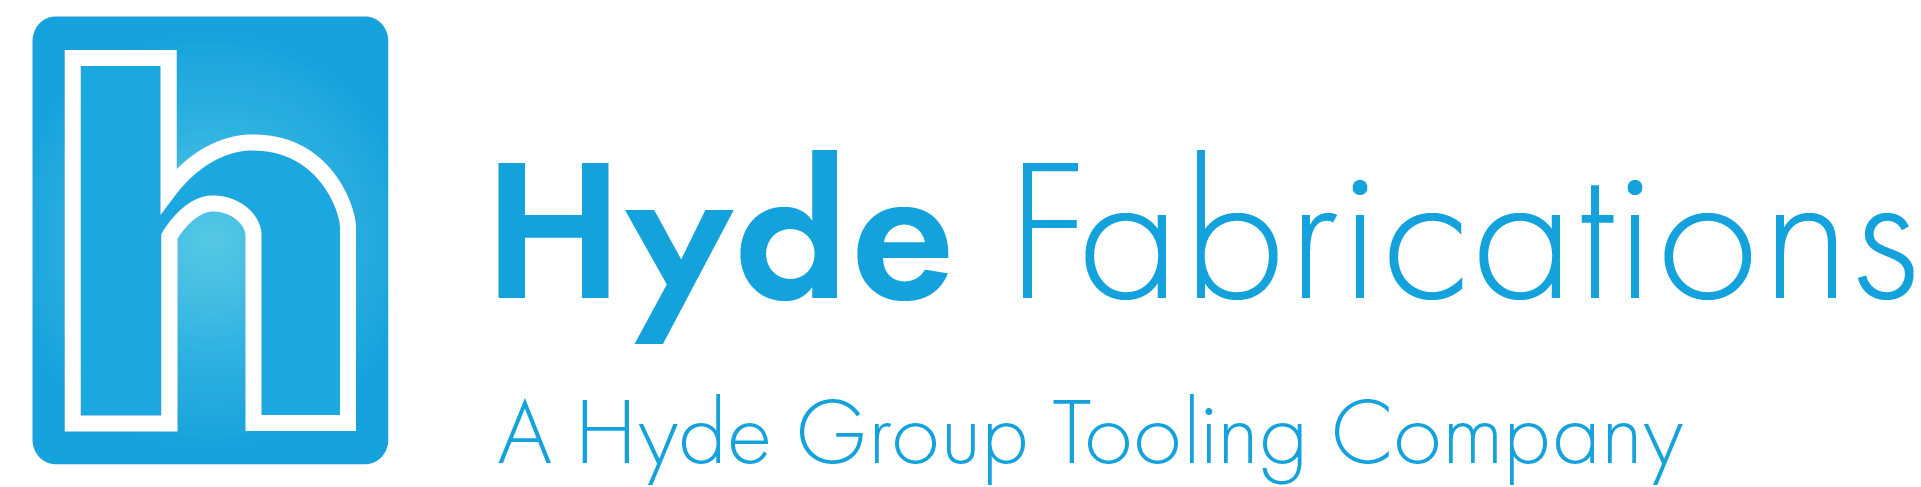 Hyde Fabrications Logo.png